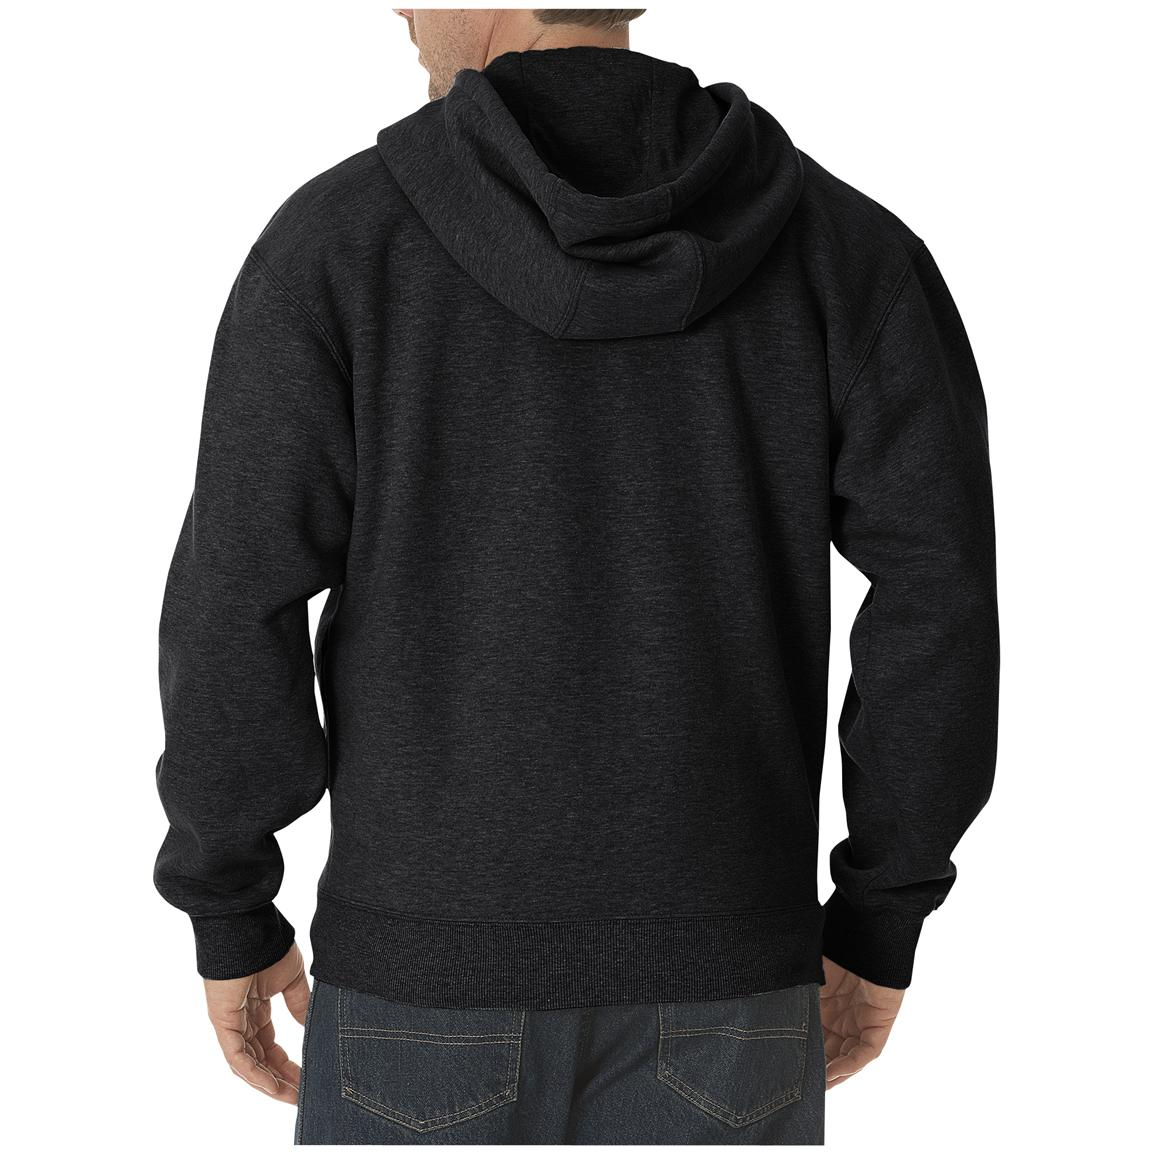 3-Pc. hood with drawstring closure